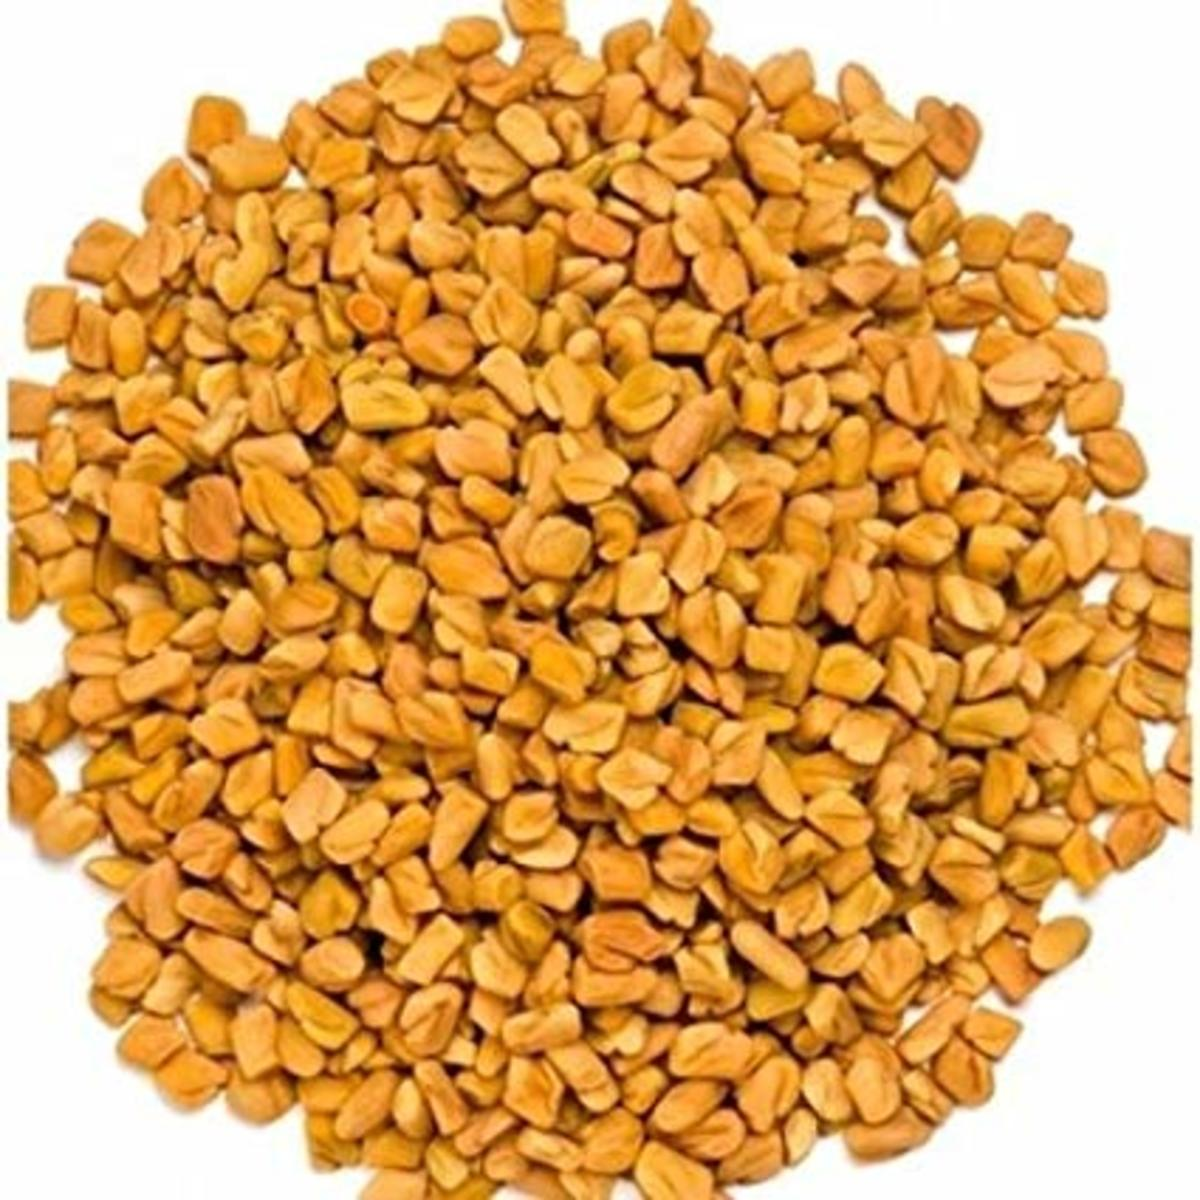 Methi Daana or fenugreek seeds